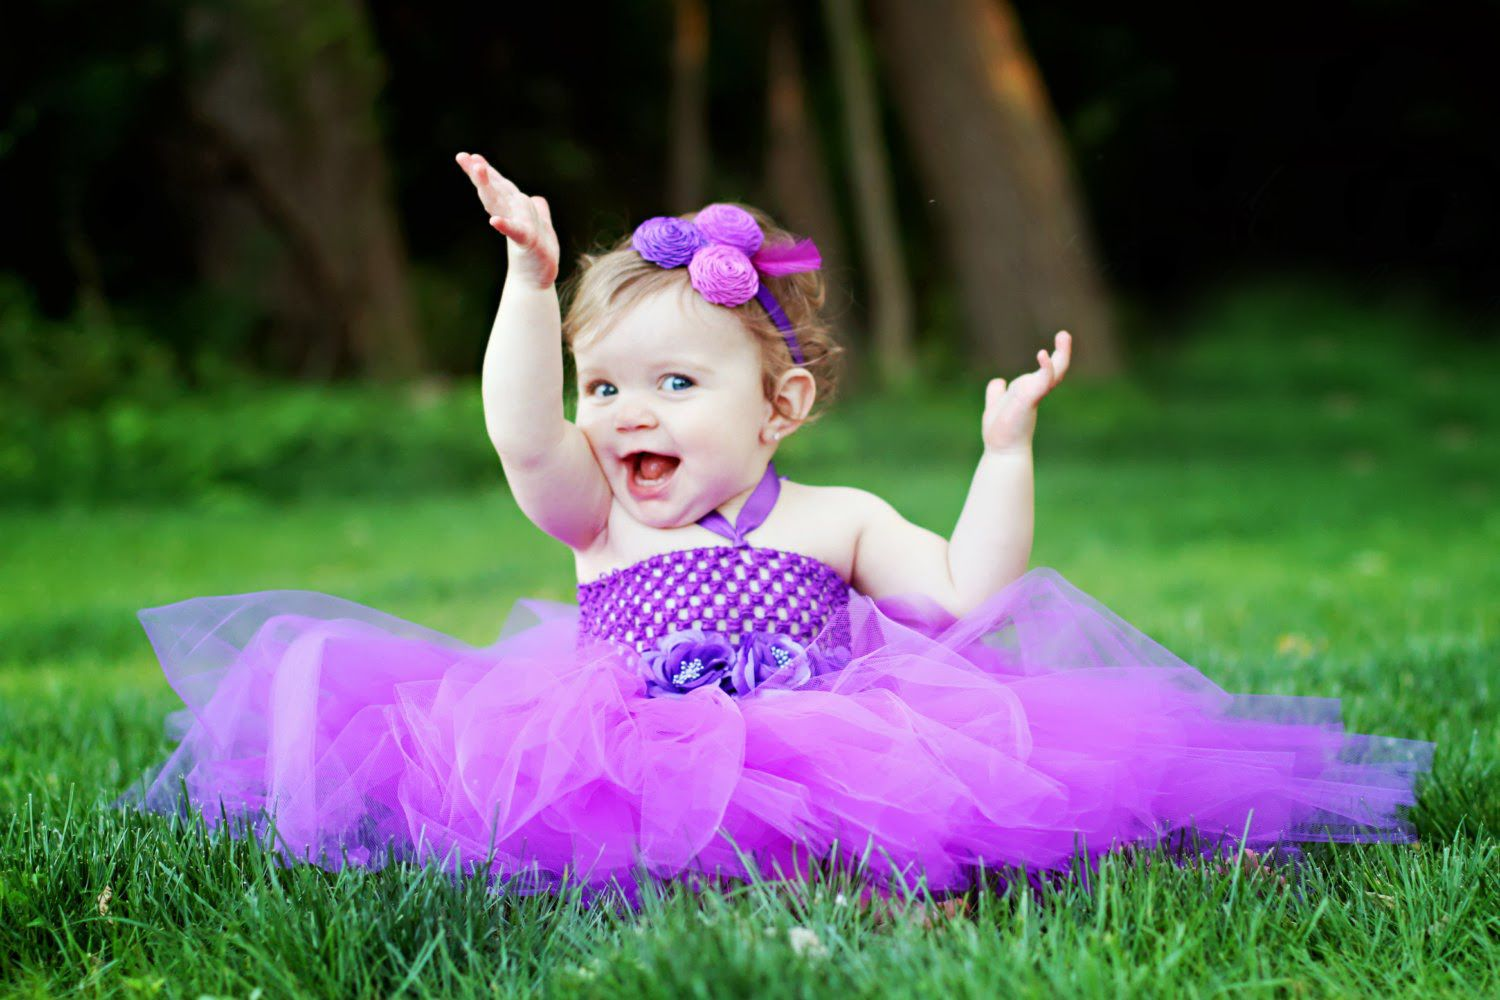 Latest Cute Baby Sweet Baby Hd Wallpaper In 1080p Super Hd